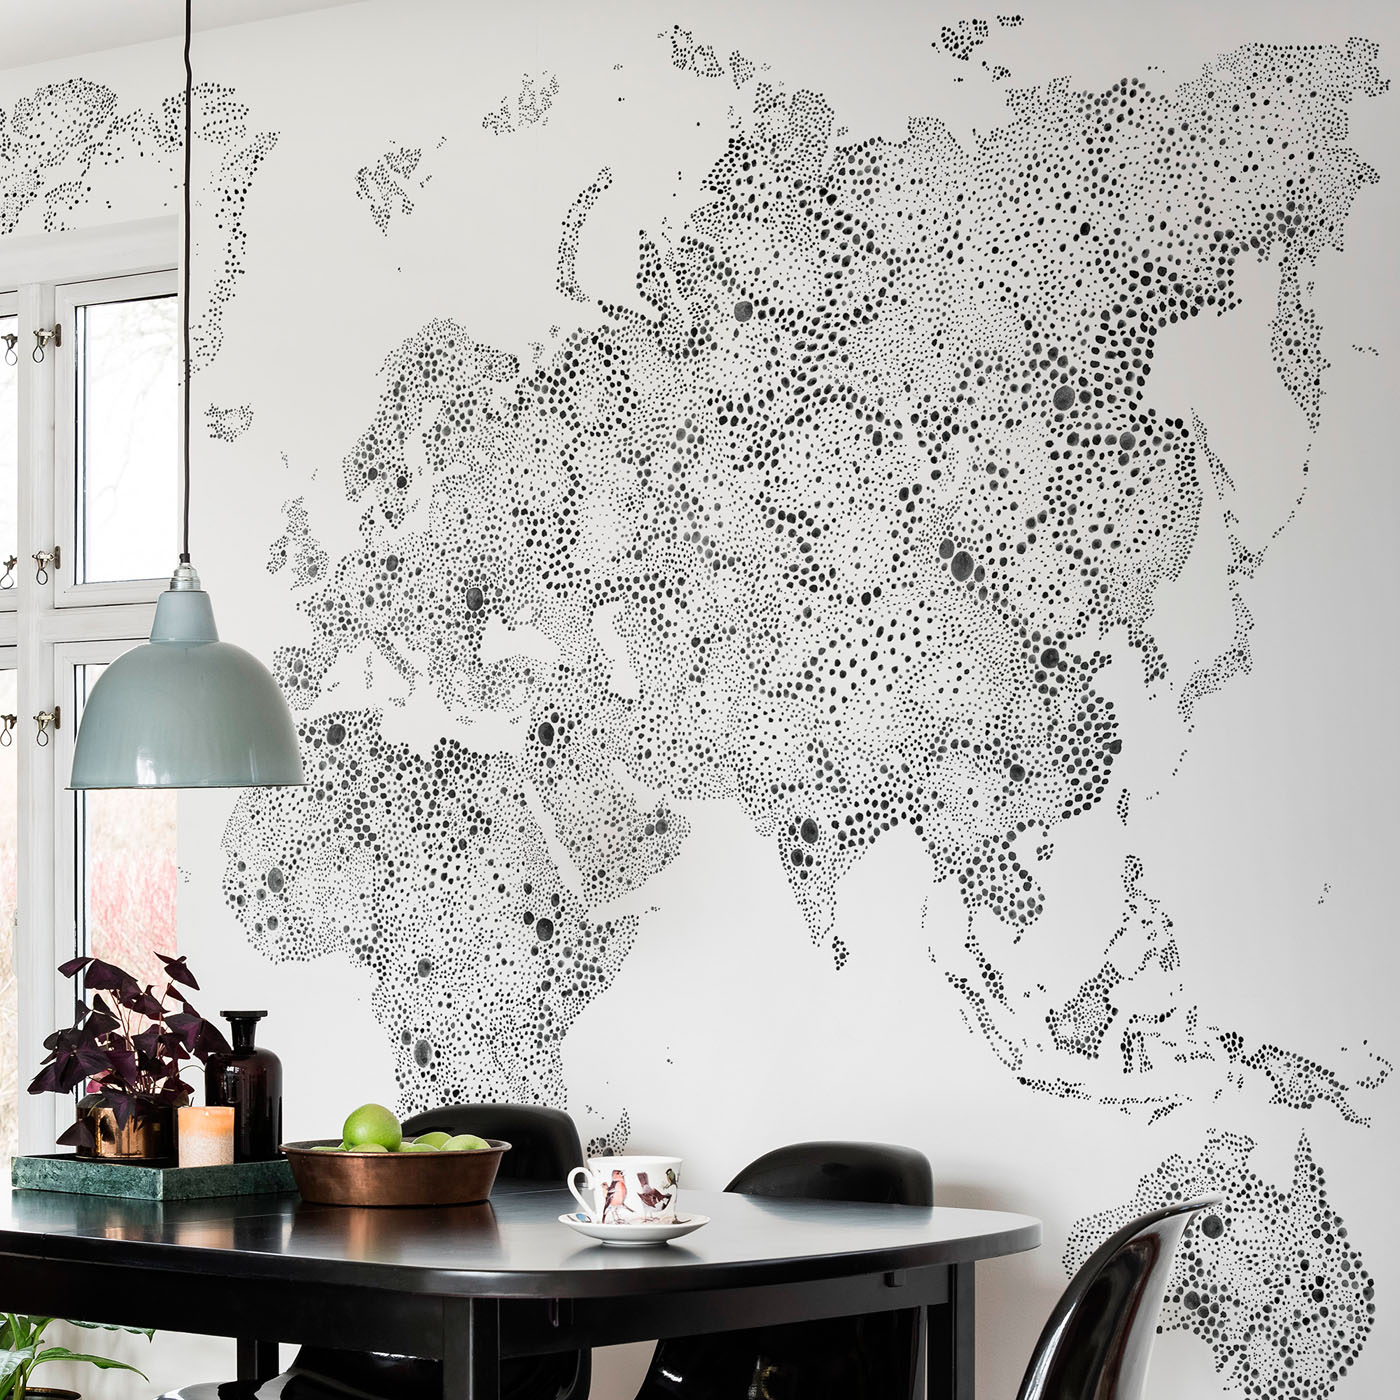 World Map in 'Black' from Sandberg Wallpaper